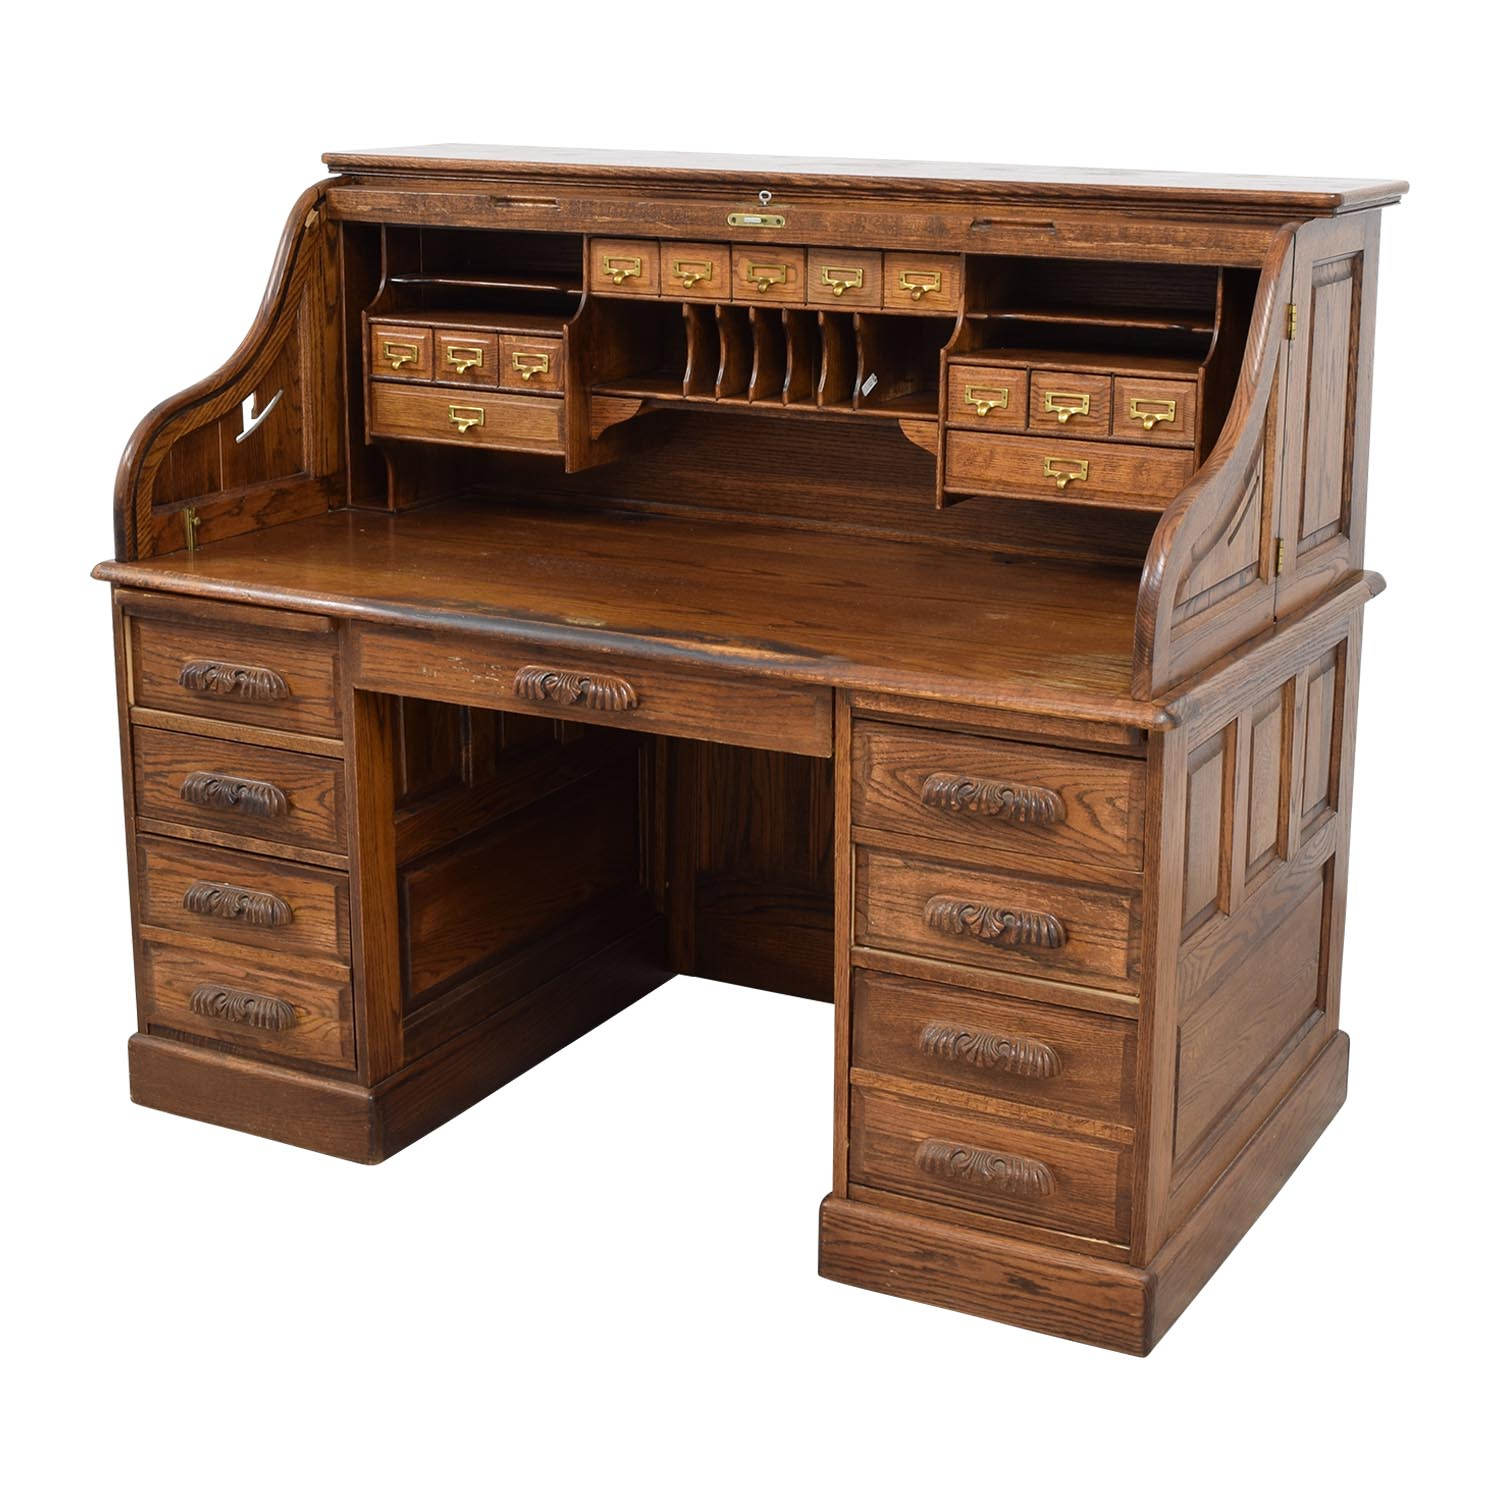 84 Off Antique Oak Roll Top Desk Tables